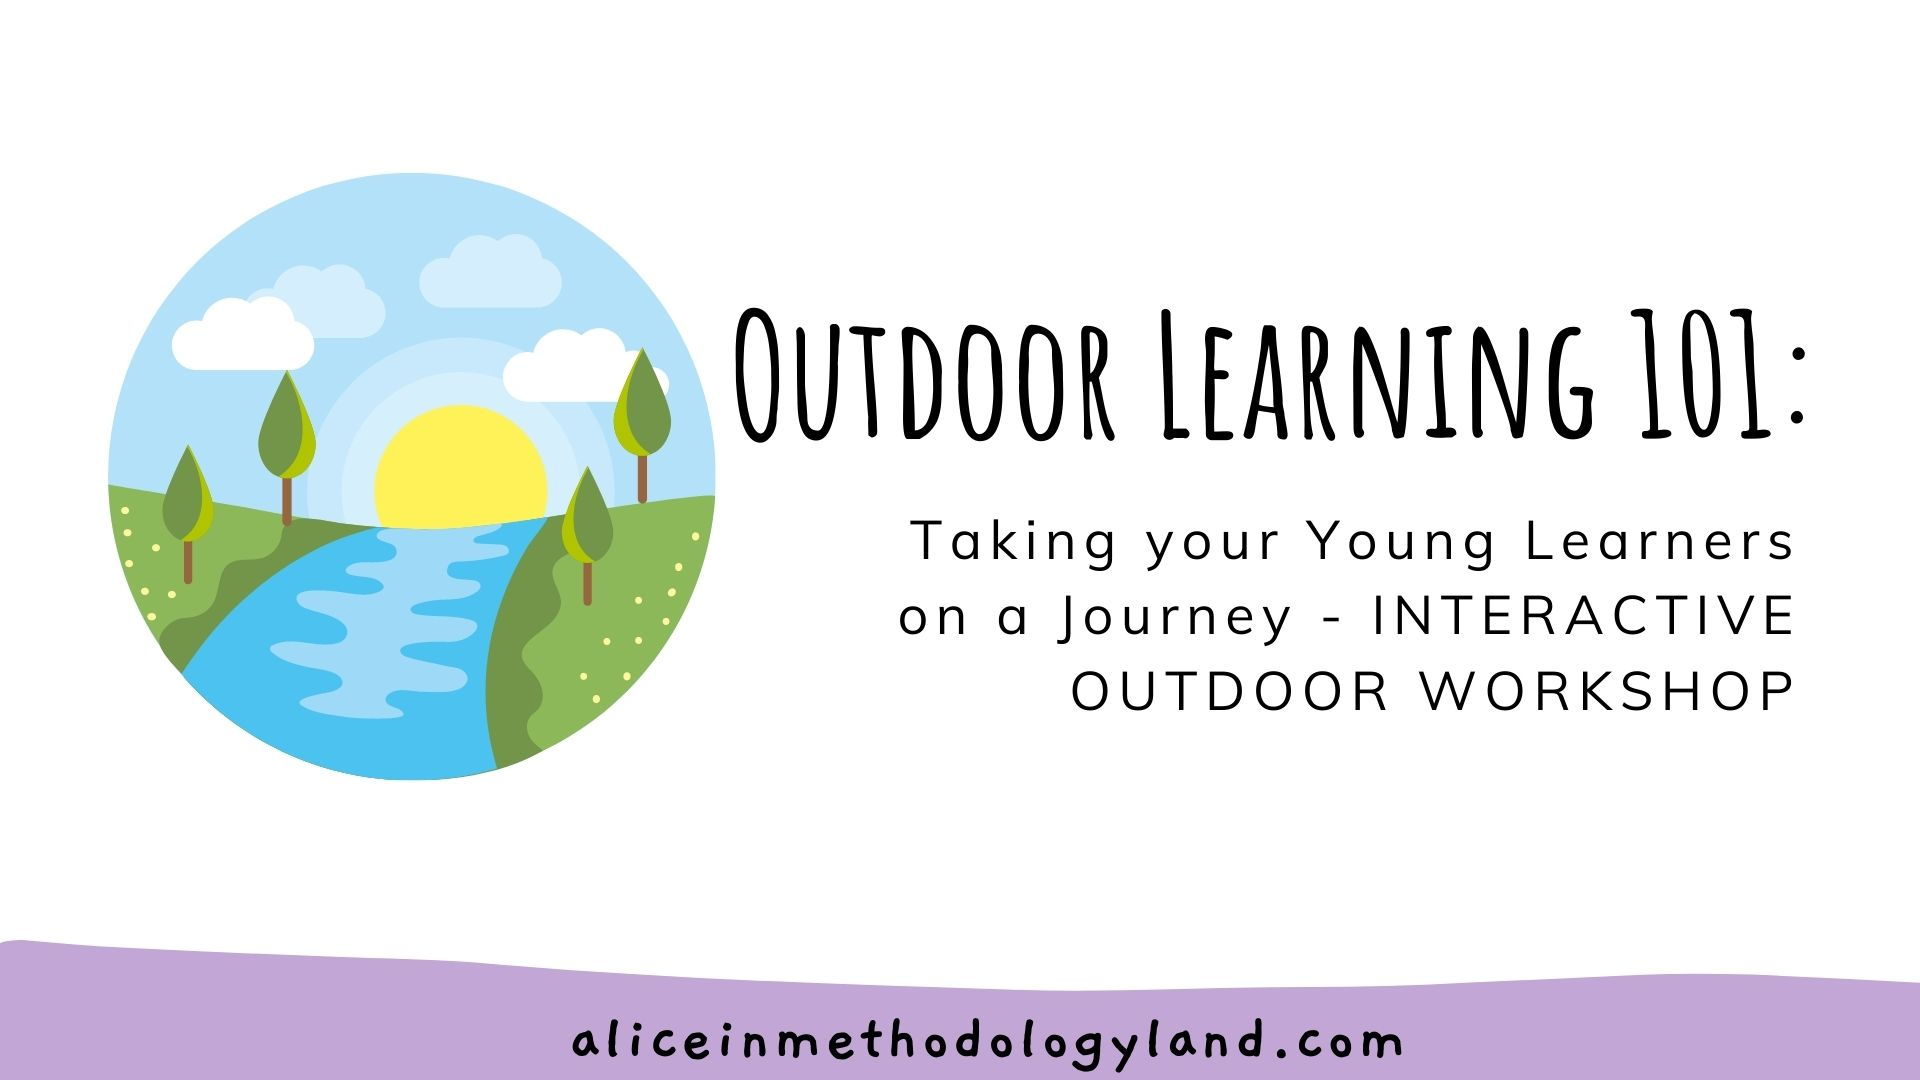 Outdoor Learning 101: Taking your Young Learners on a Journey – INTERACTIVE OUTDOOR TEACHER TRAINING